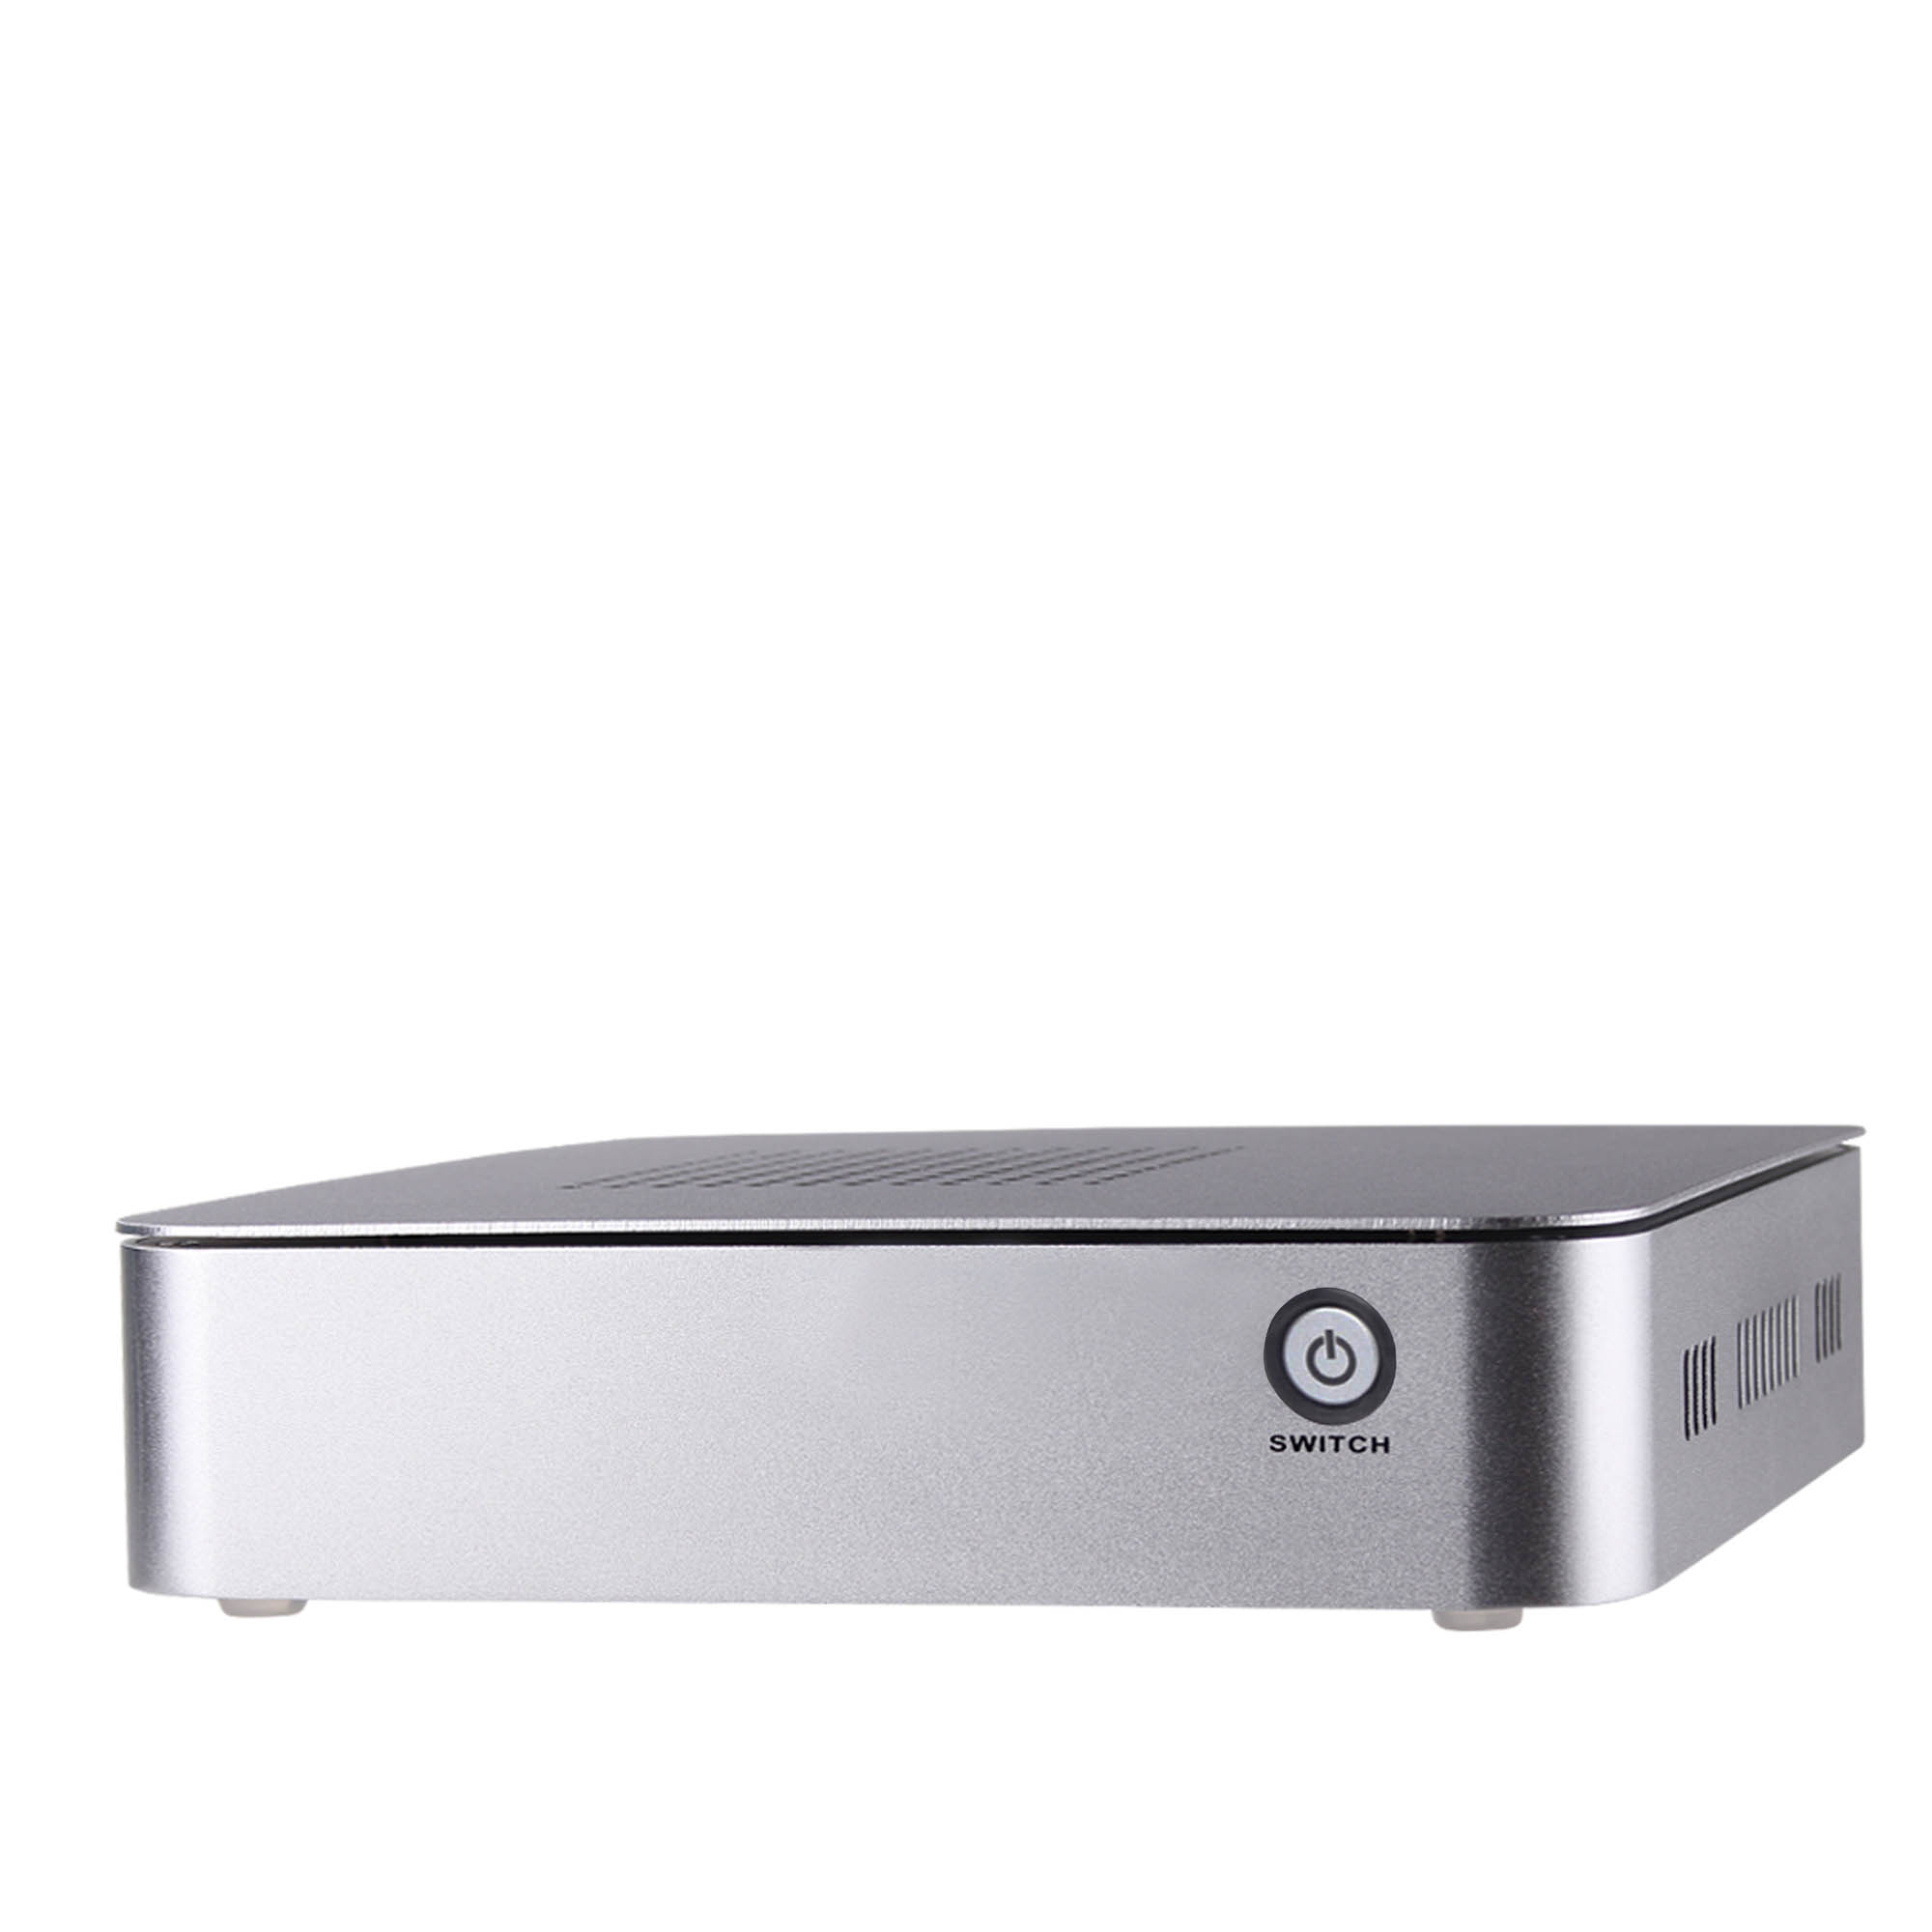 US $191 0 |INTEl G1610 Celeron Dual core CPU thin client computer network  hptc desktop pc with 4*USB2 0, 1*HDMI, 1*VAG,supprot wifi-in Mini PC from